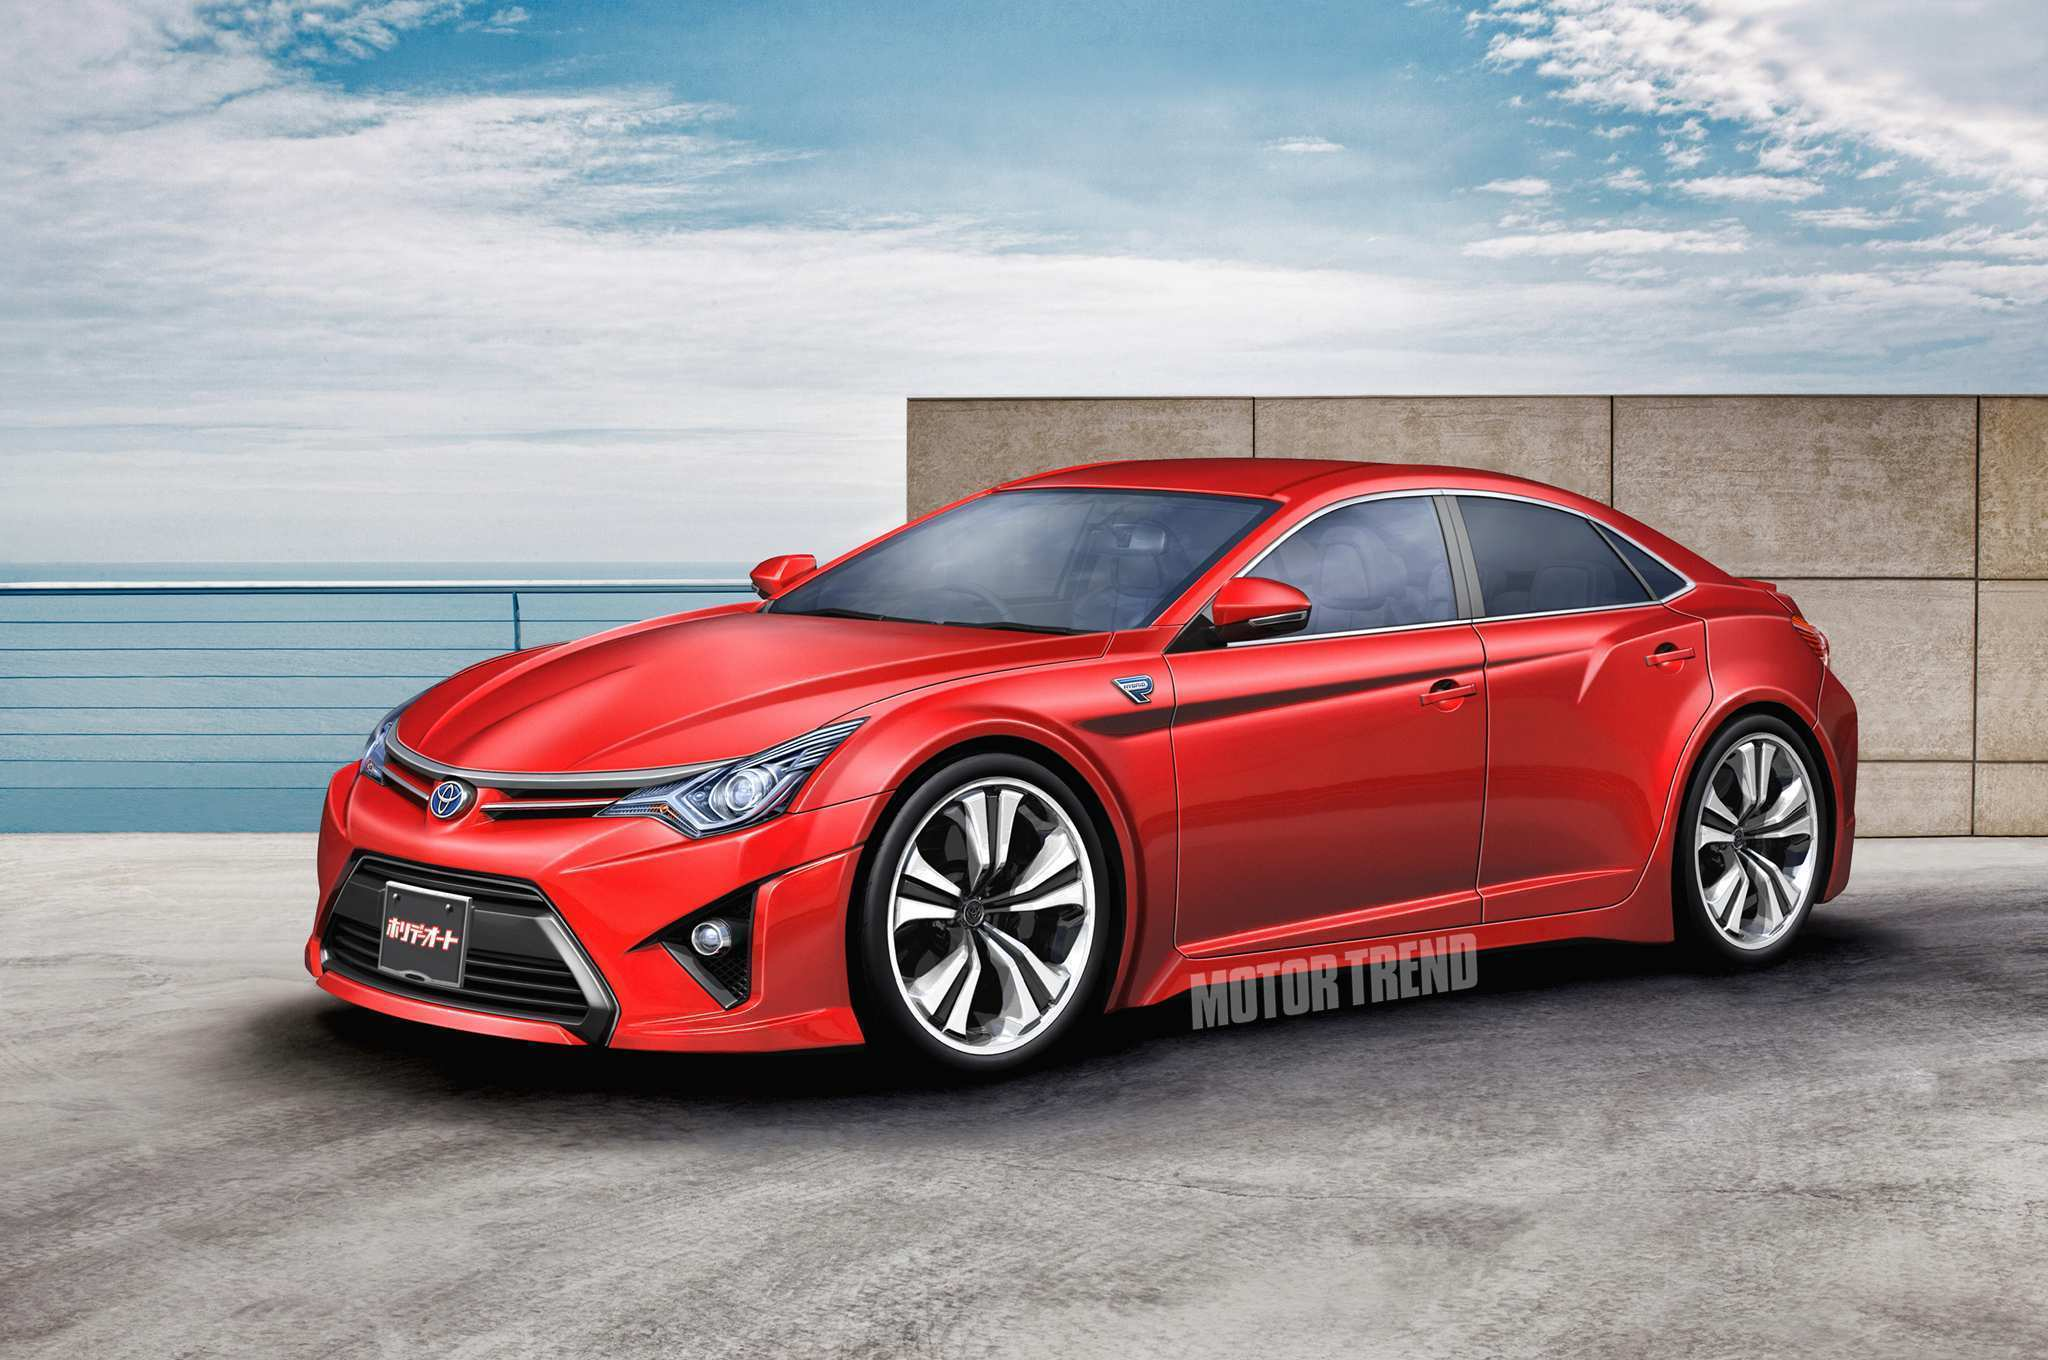 56 The Best 2019 Scion FR S Sedan Release Date And Concept